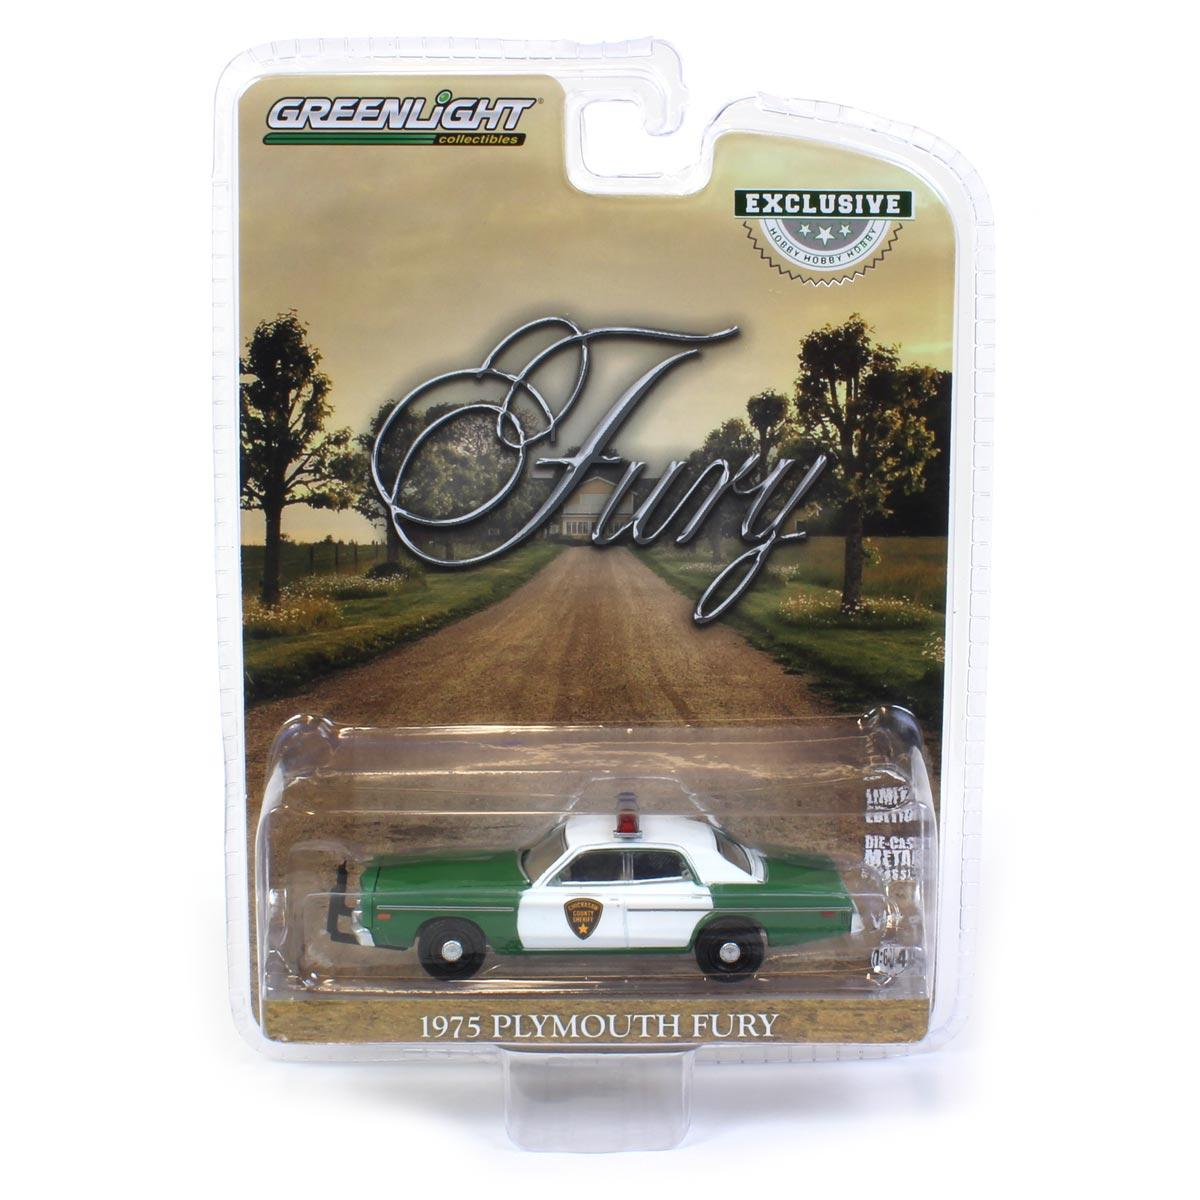 GREENLIGHT 1975 PLYMOUTH FURY CHICKASAW COUNTY SHERIFF HOBBY EXCLUSIVE 30141 NEU